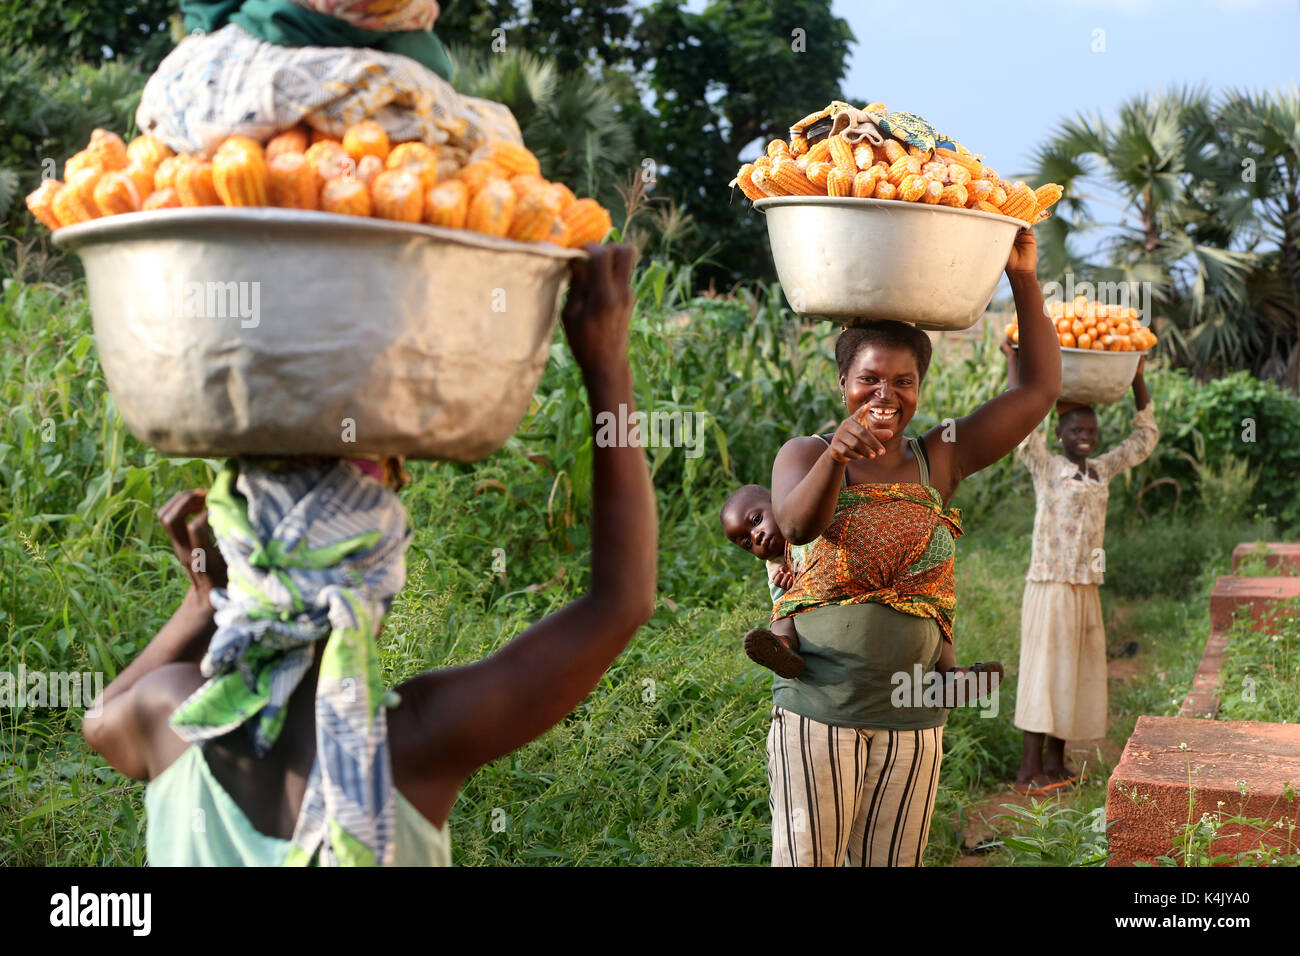 Women carrying platter with corn on head, Sotouboua, Togo, West Africa, Africa - Stock Image